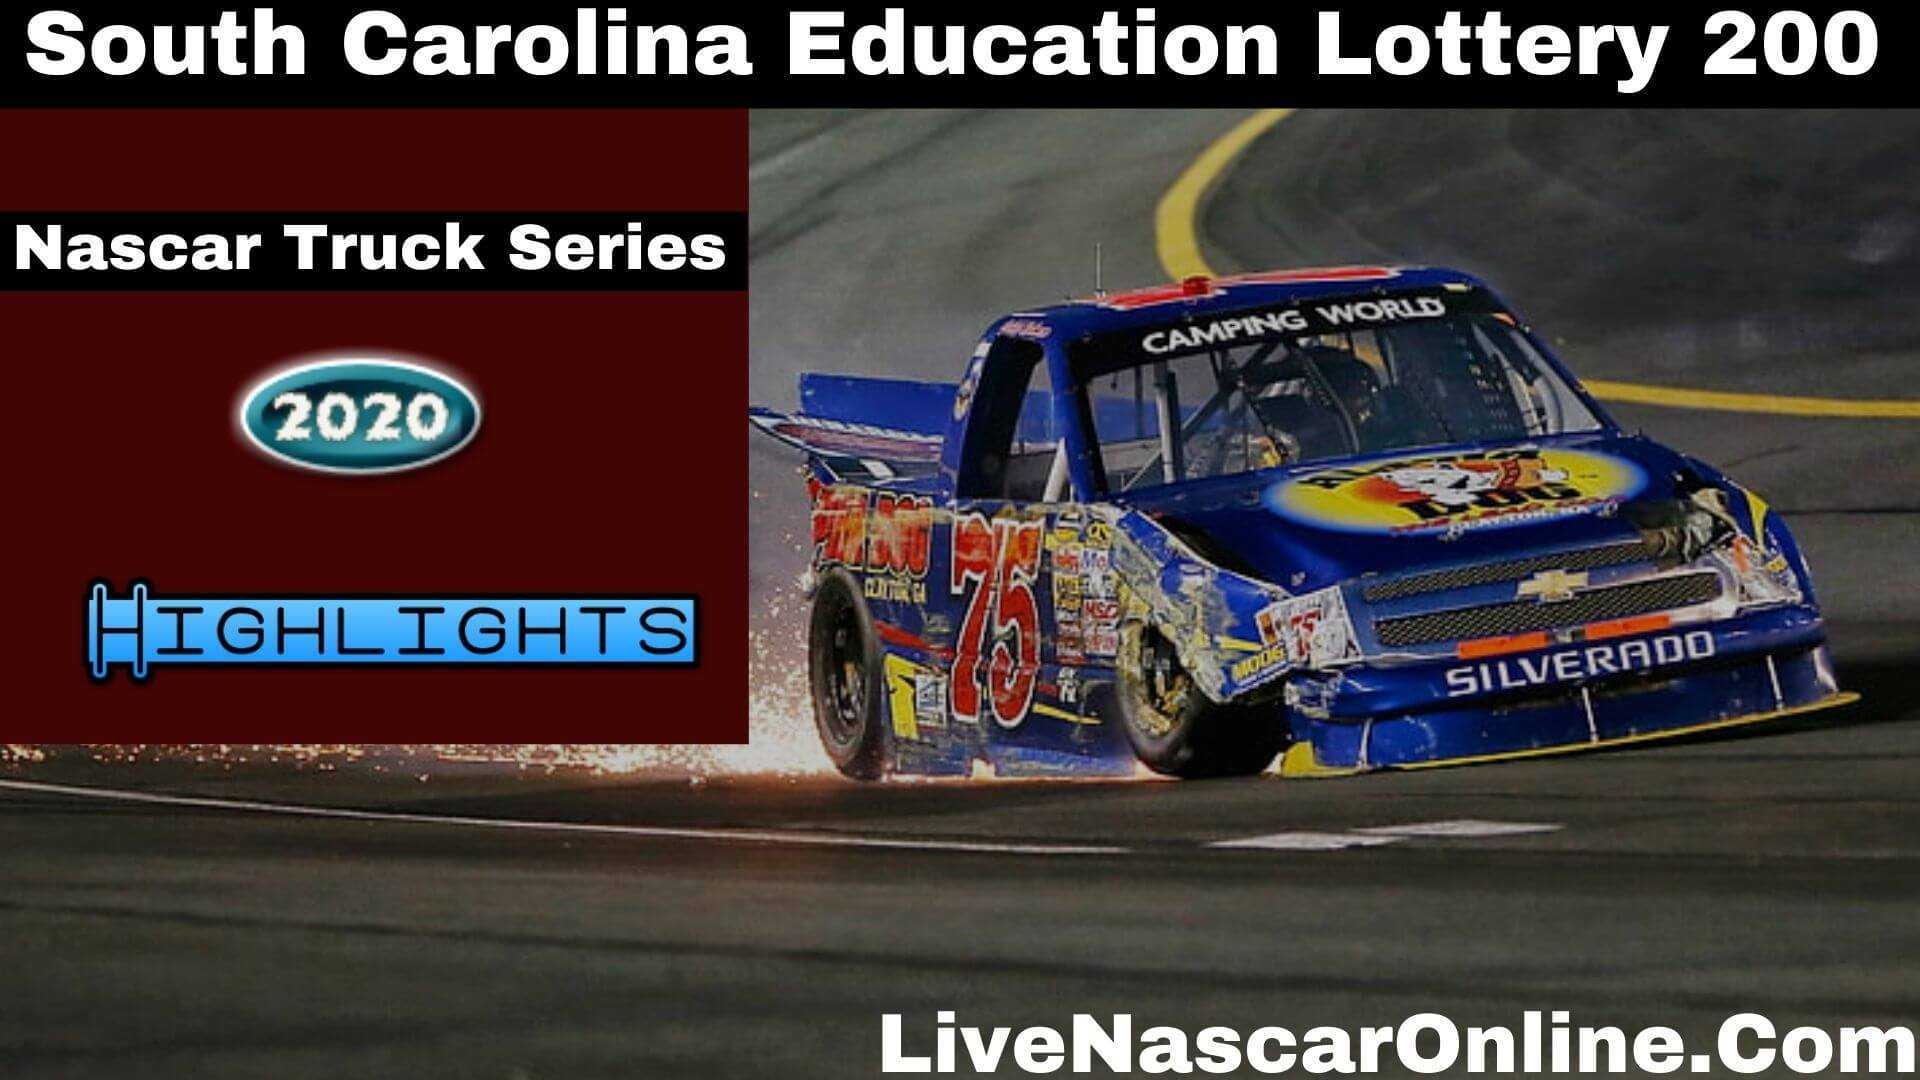 South Carolina Education Lottery 200 Truck Series Highlights 2020